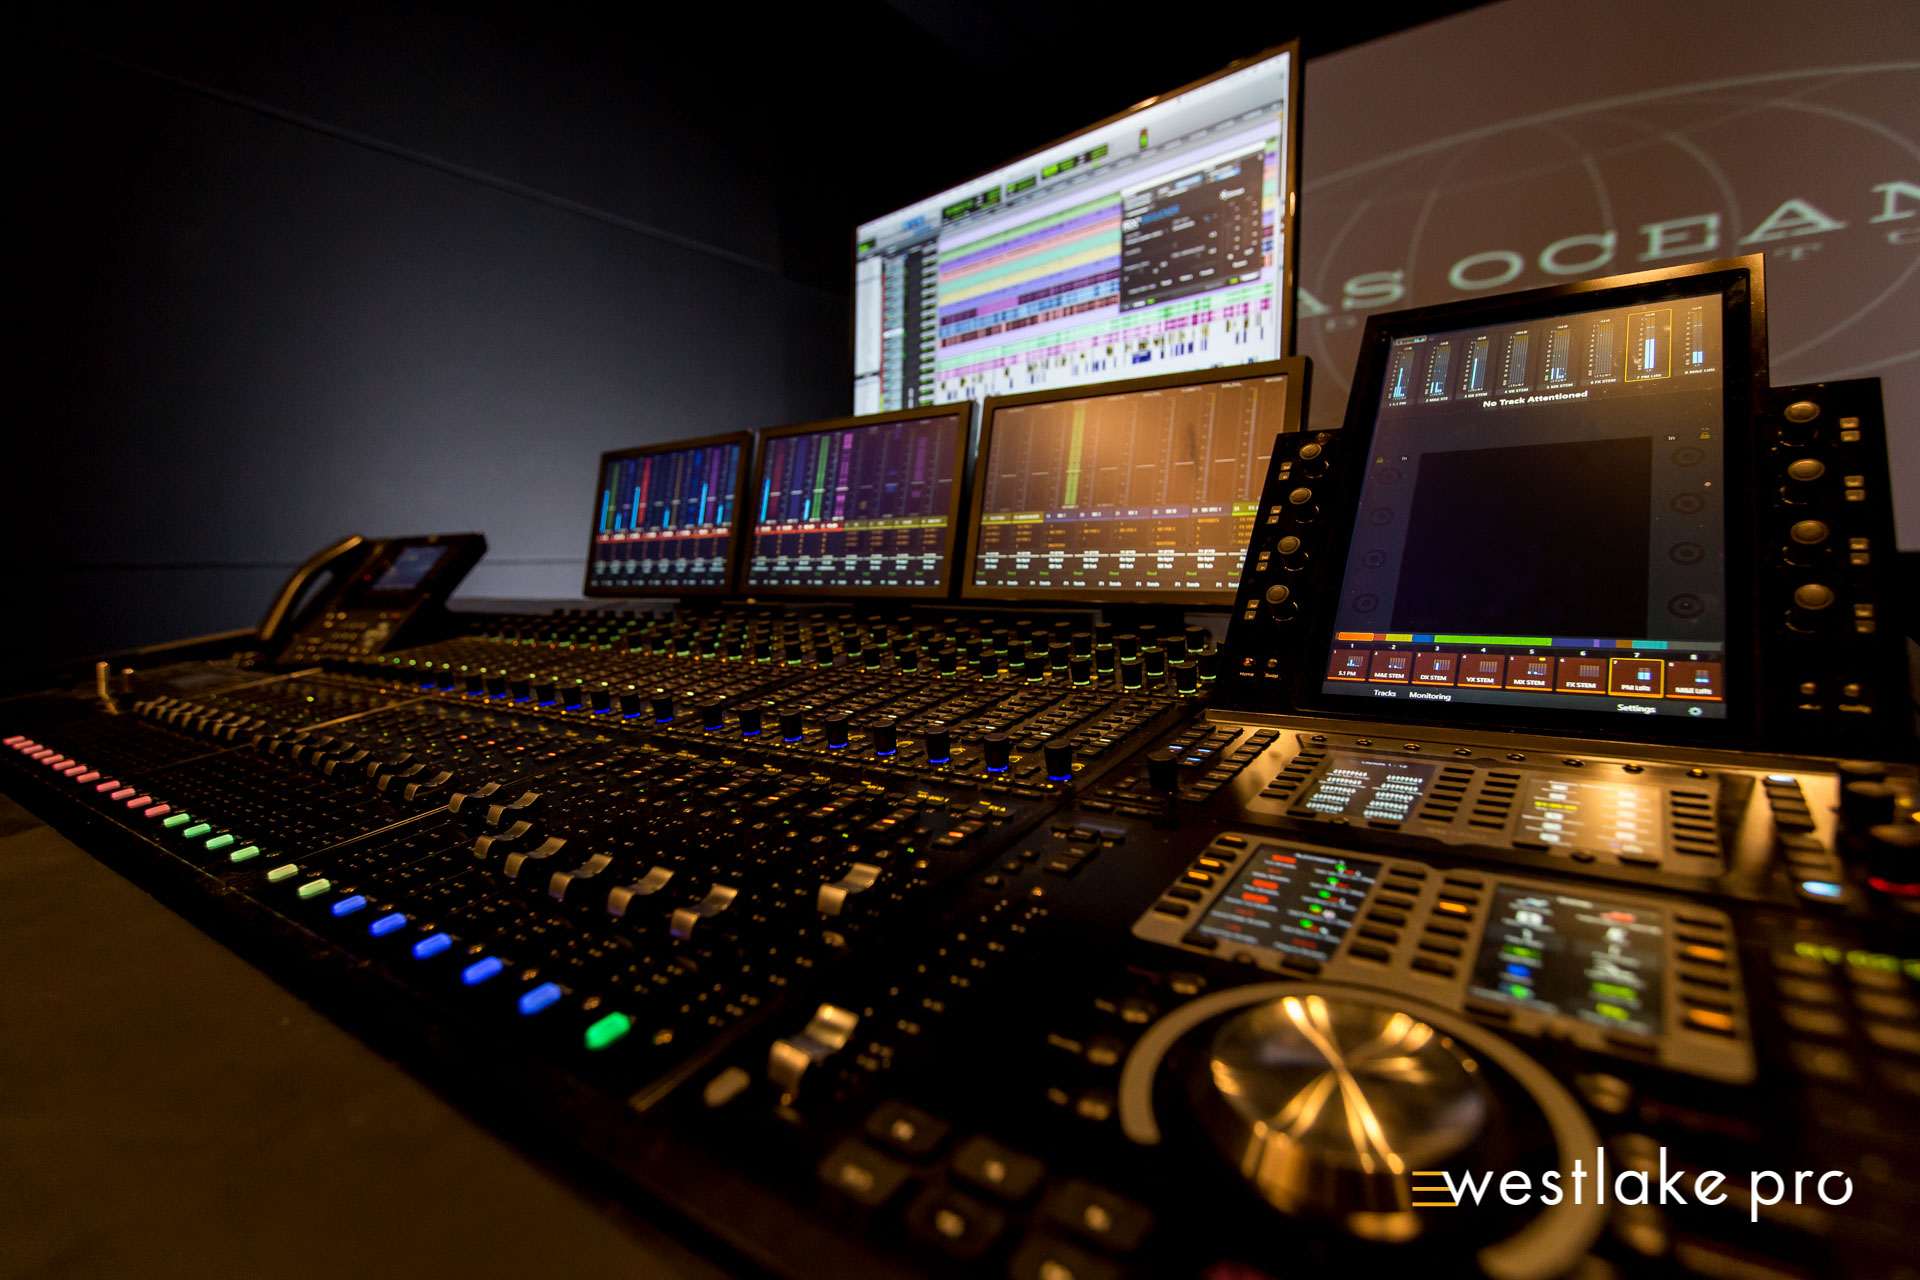 Avid S6 at Atlas Oceanic